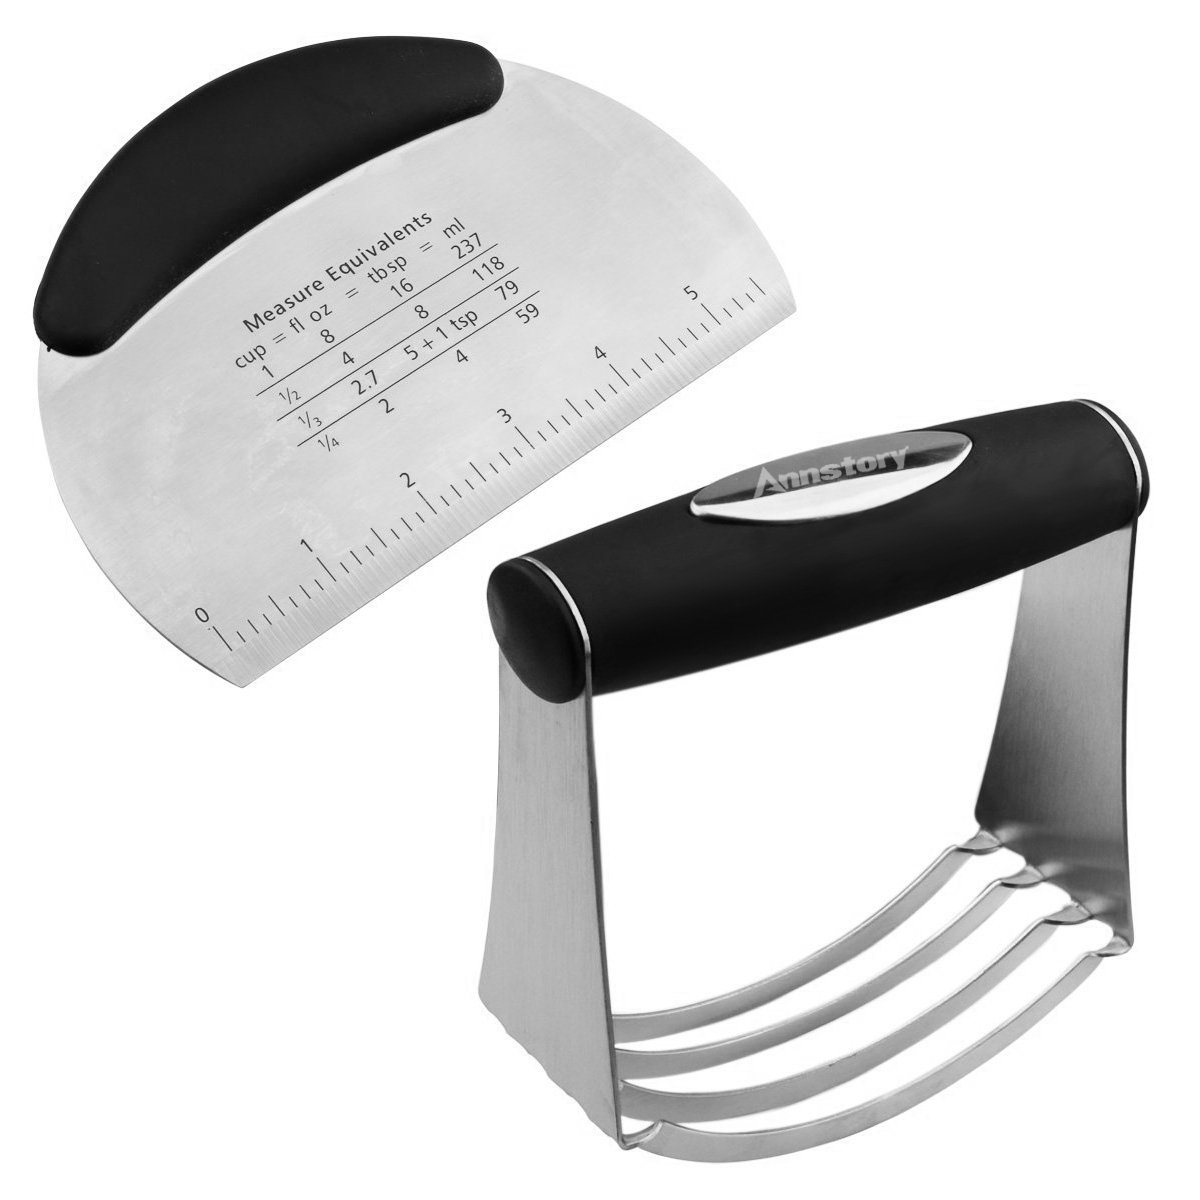 Annstory Stainless Steel Dough Blender, Pastry Cutter Pastry Scraper Set-with Blades, Multipurpose Spatula-Pizza/Biscuits Dough Cutter- Chopper-Professional Baking Dough Tools